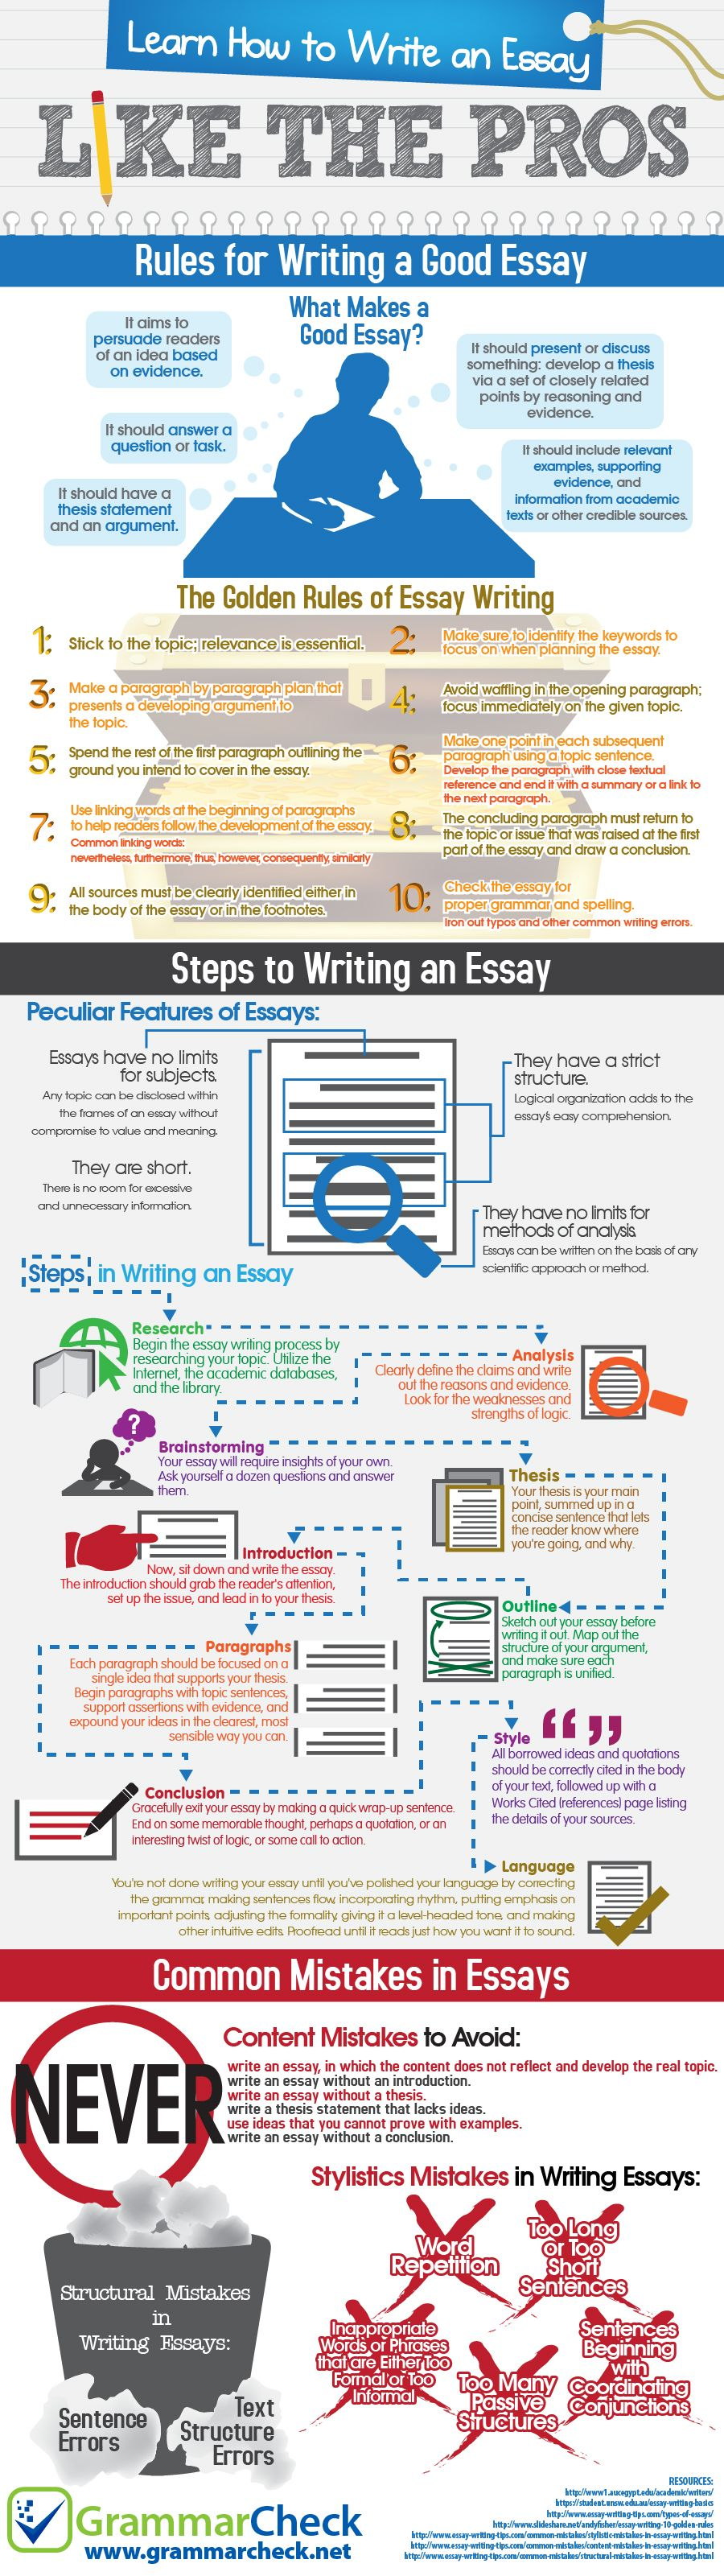 some resources for finals writing an essay language and awesome how to write an essay like the pros this infographic gives concise examples and key tips on what to do how to do it and why